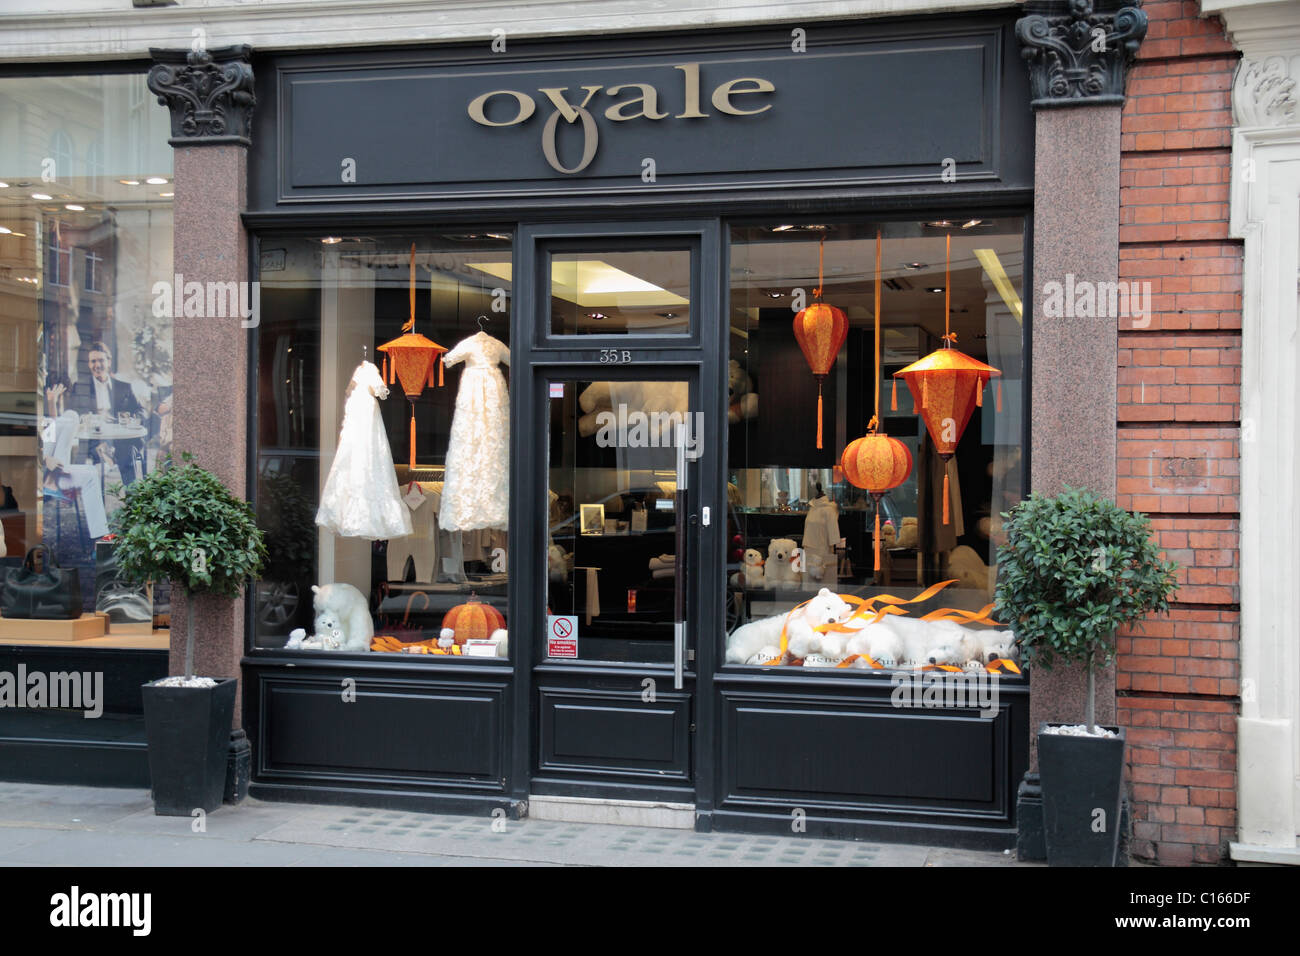 The Ovale children's clothing and fashion shop on Sloane Street, London, SW1, England. - Stock Image